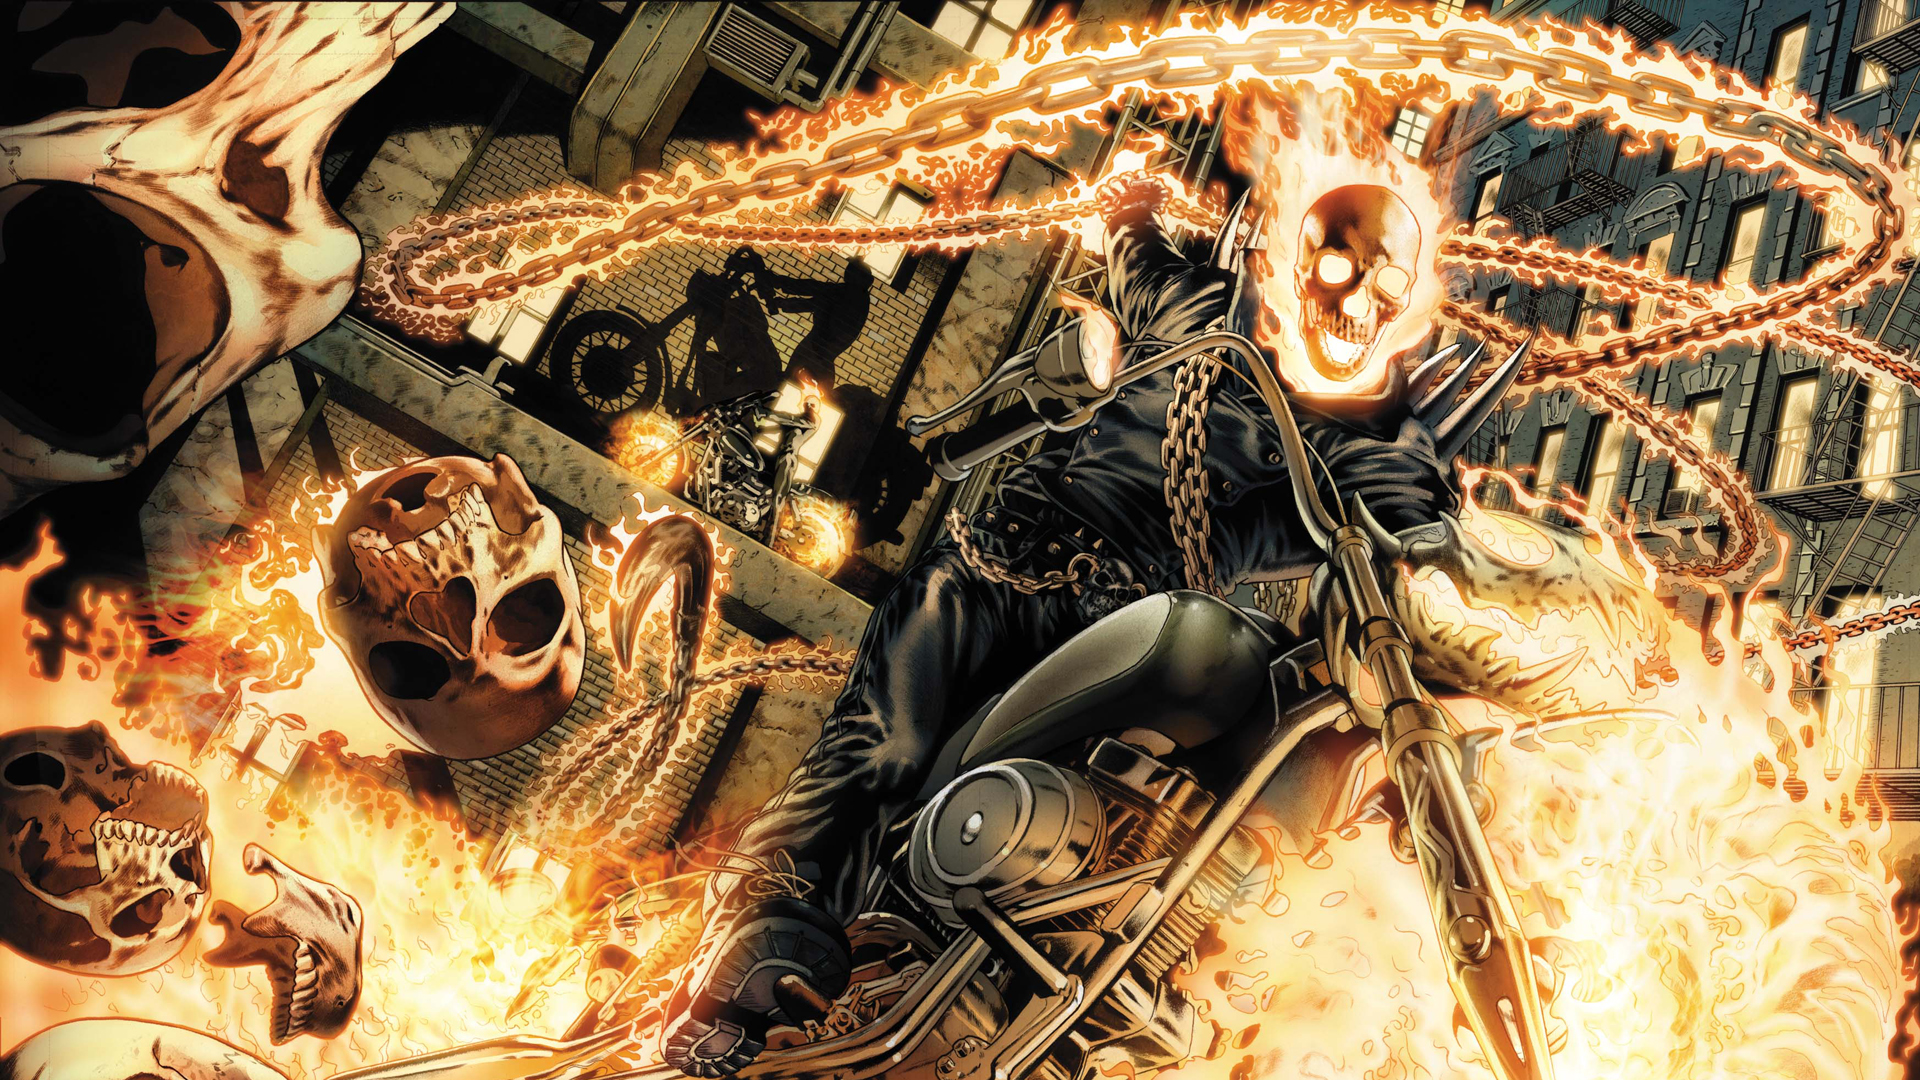 Superheroes Wallpaper Ghost Rider 1920x1080